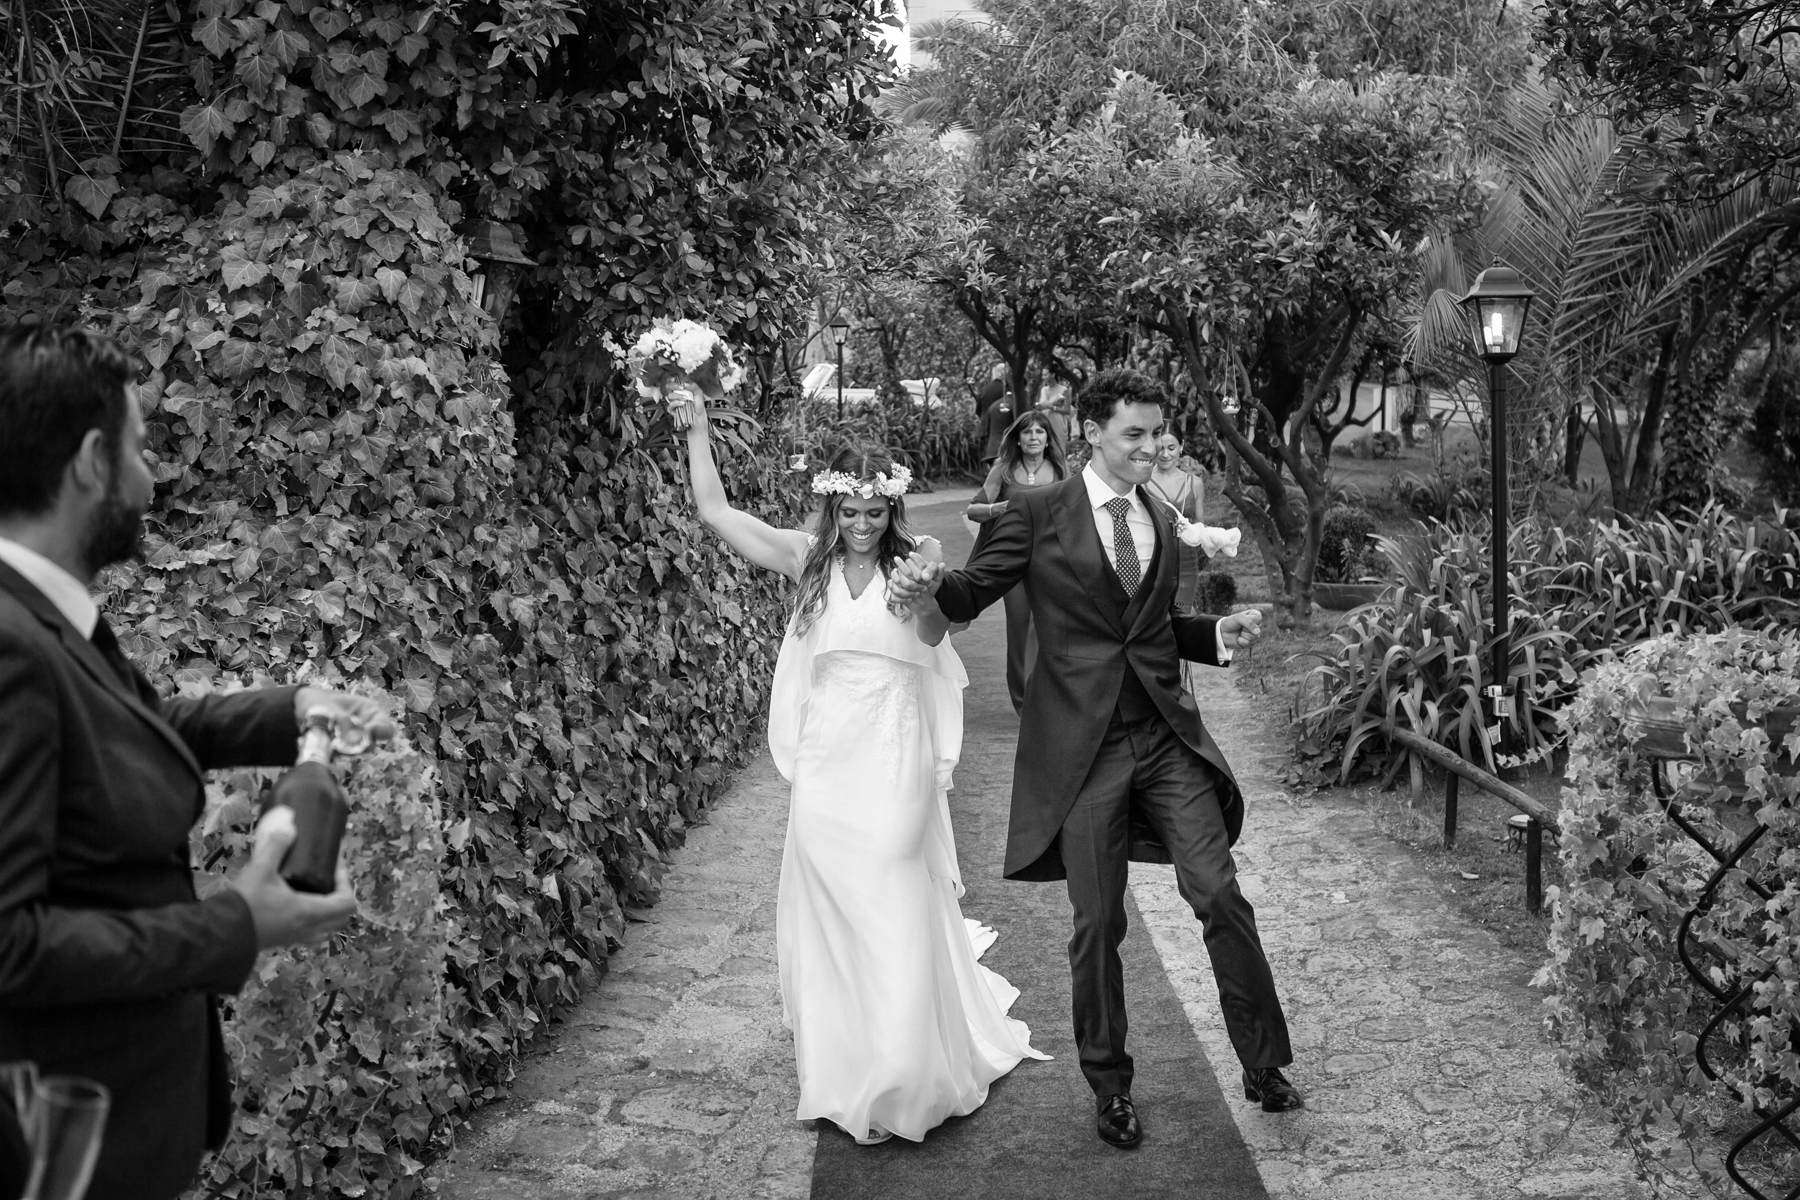 0191-_MG_7298-Modificafotografo-matrimonio-napoli-scattidamore